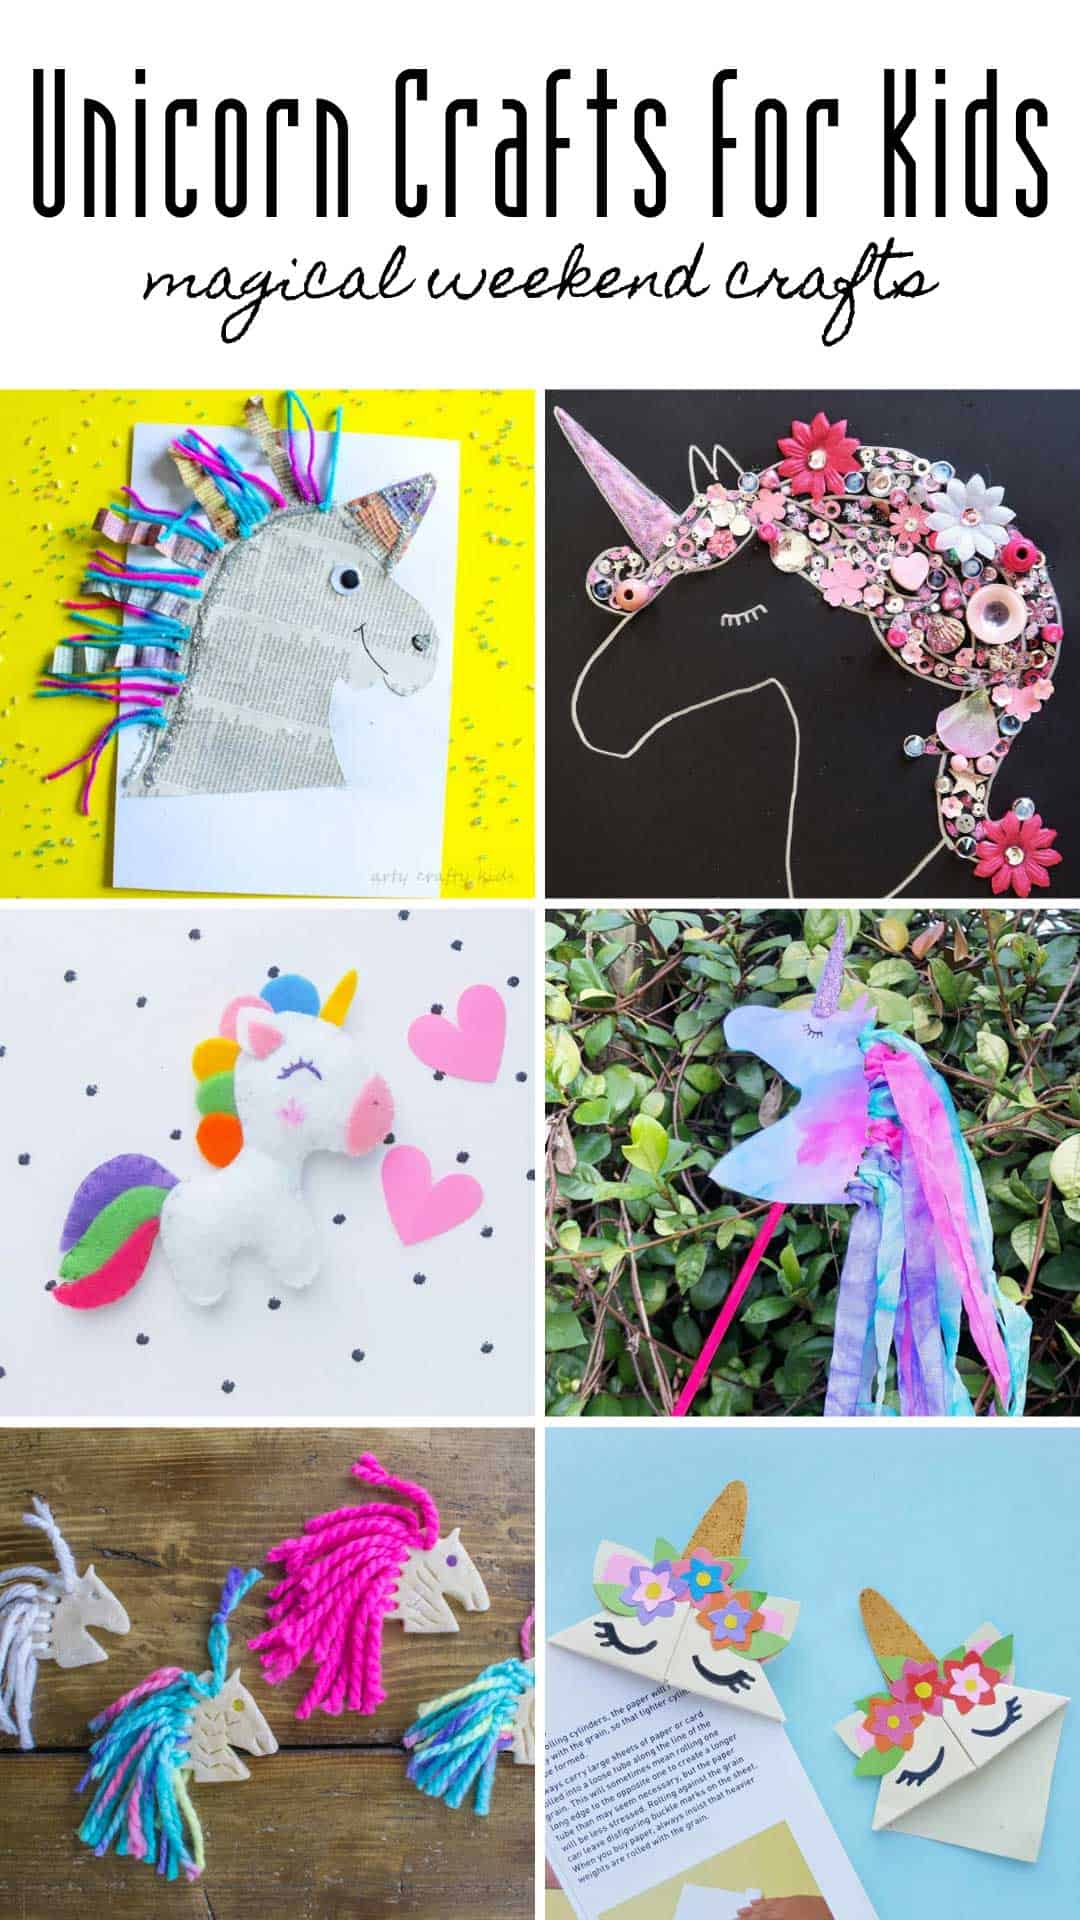 So many MAGICAL unicorn crafts for kids to make in this list! Stock up on canvas so the kids can make personalised Christmas gifts!